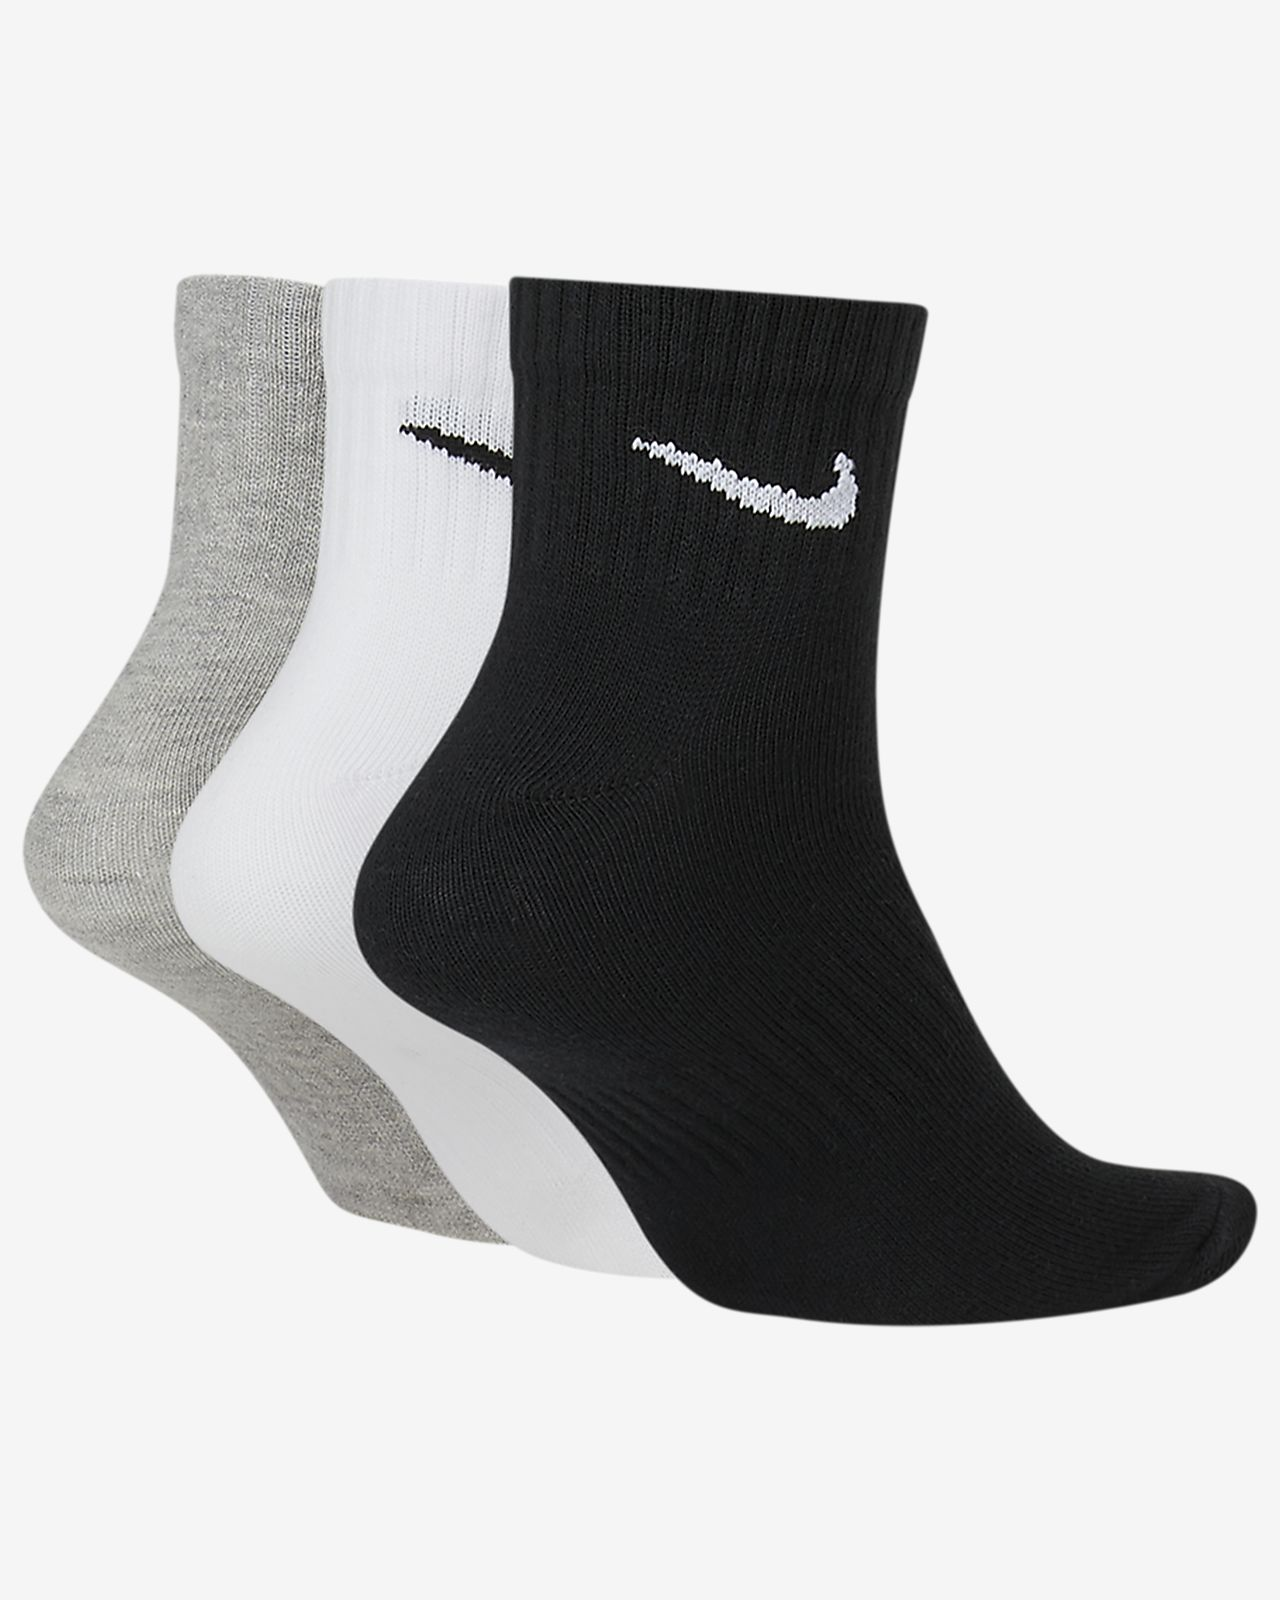 NIKE CALZE PERFORMANCE COTTON BASSE (3 PAIA), Acquista